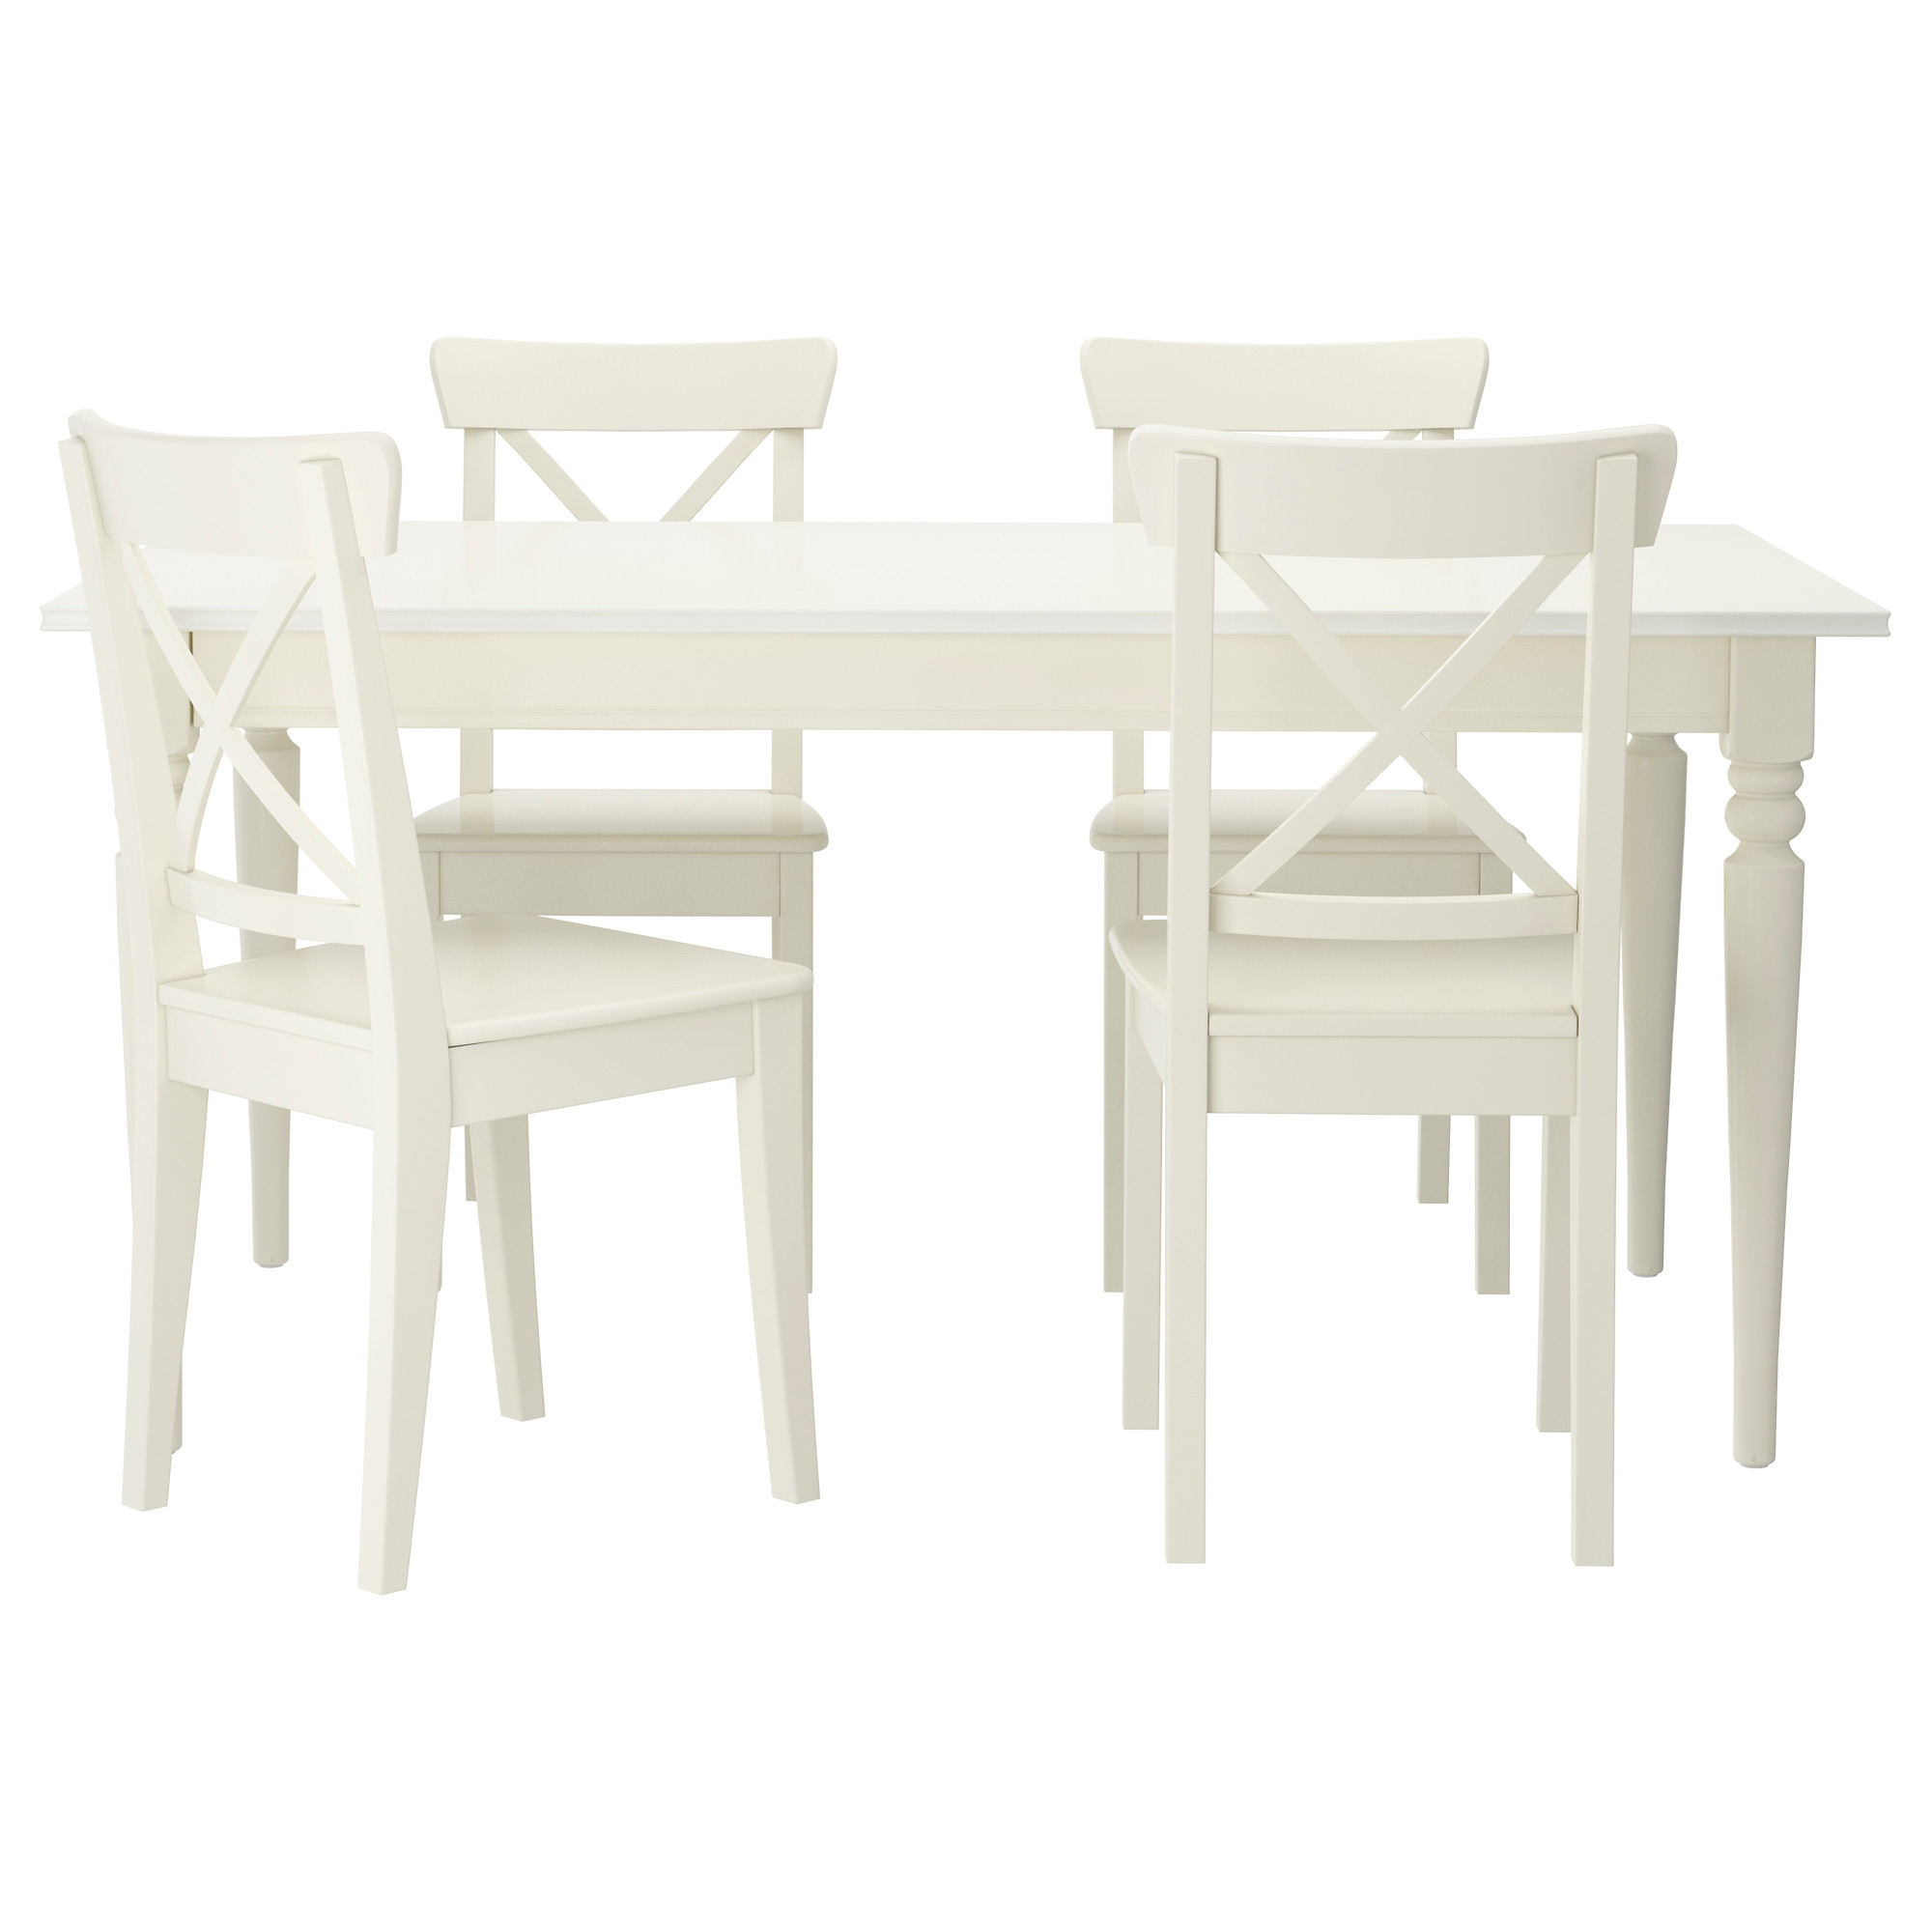 Fashionable white dining table and chairs ingatorp / ingolf table and 4 chairs - ikea bklceiy